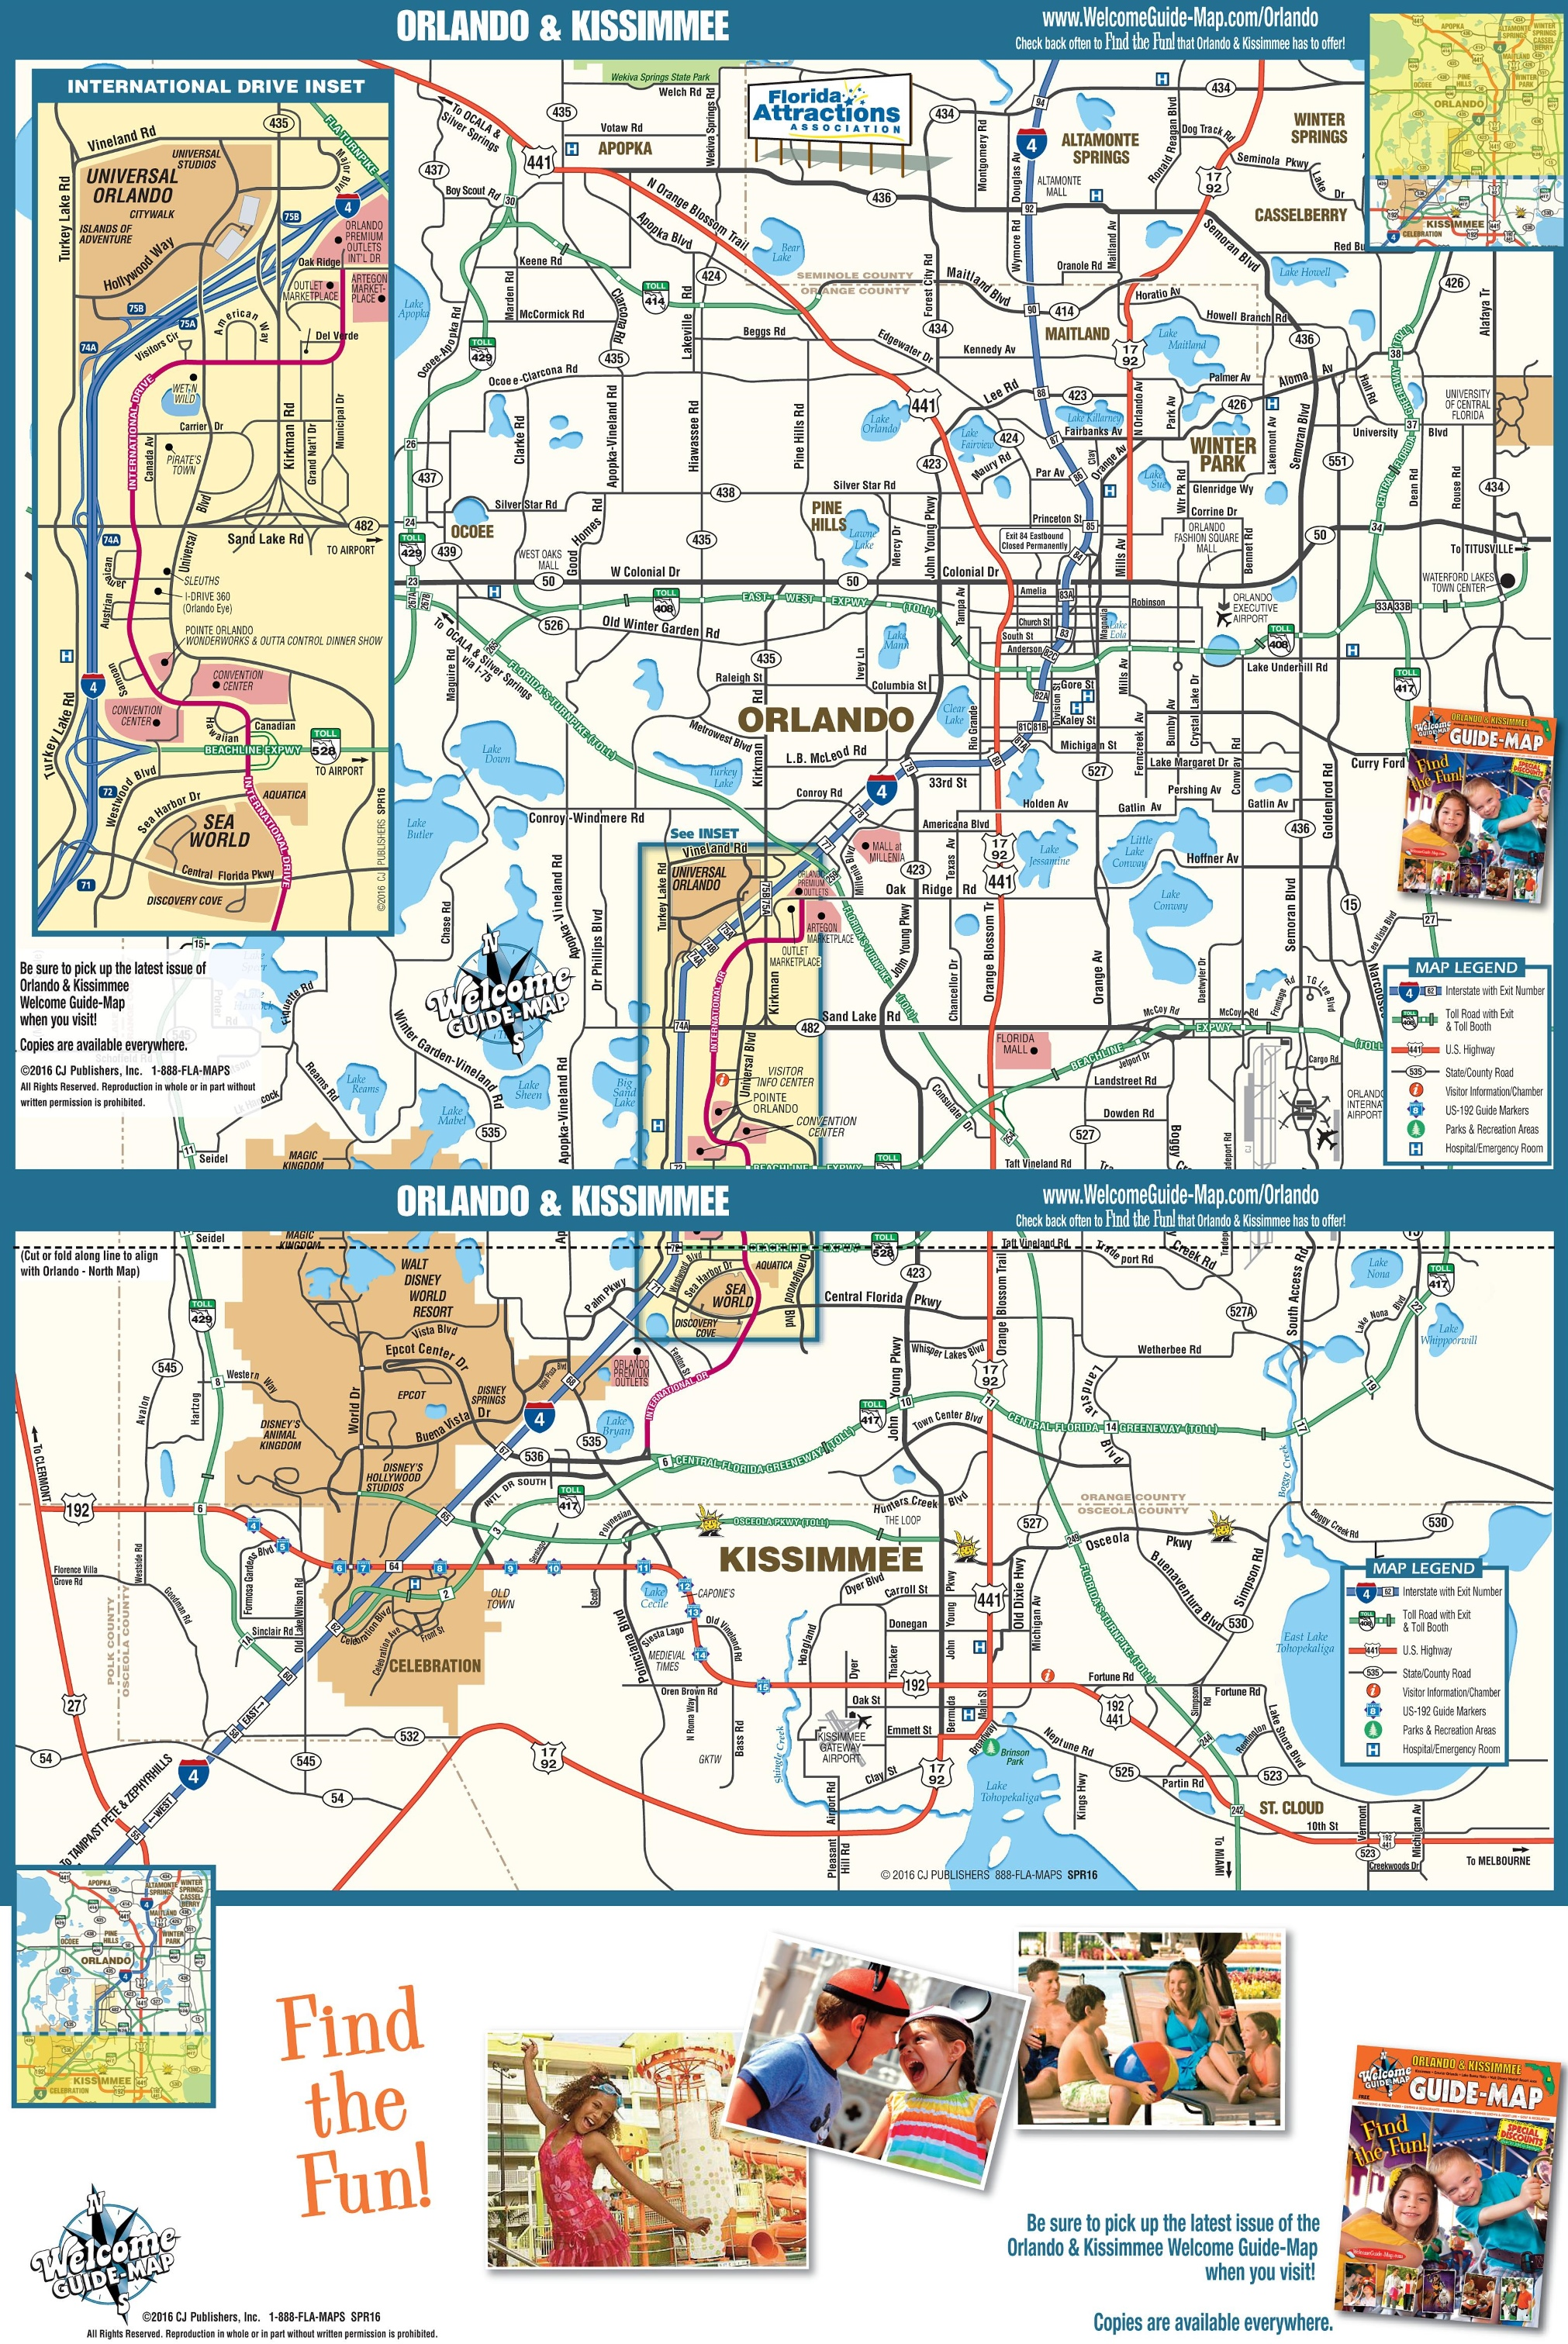 Orlando Metro Map.Orlando Maps Florida U S Maps Of Orlando